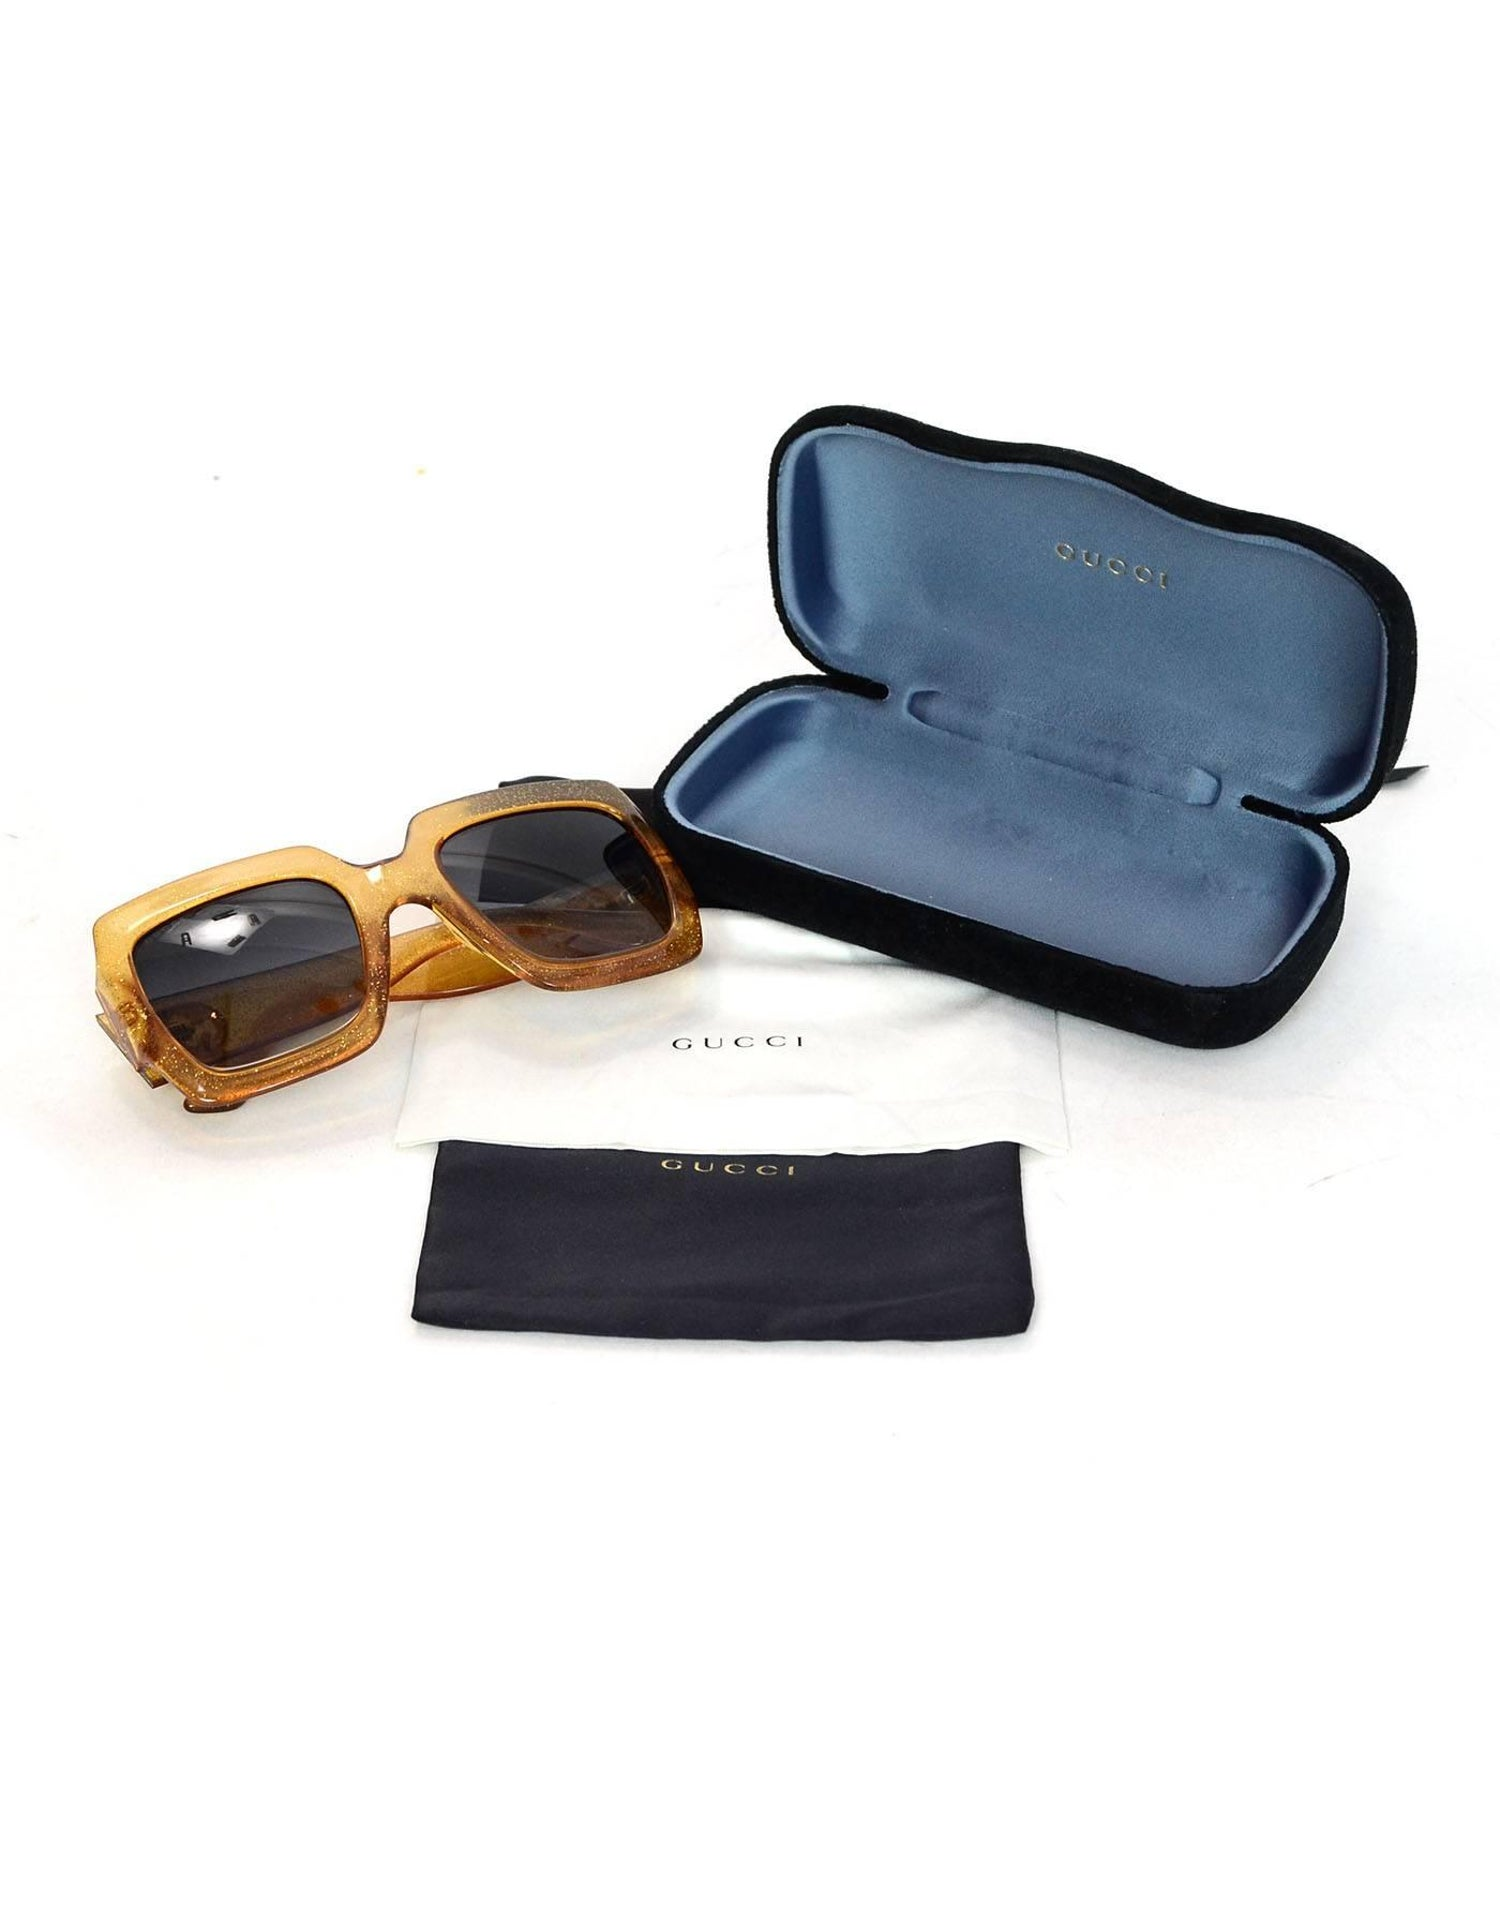 612f58eaaec61 Gucci Gold Glitter Acetate Square Frame Sunglasses with Case For Sale at  1stdibs